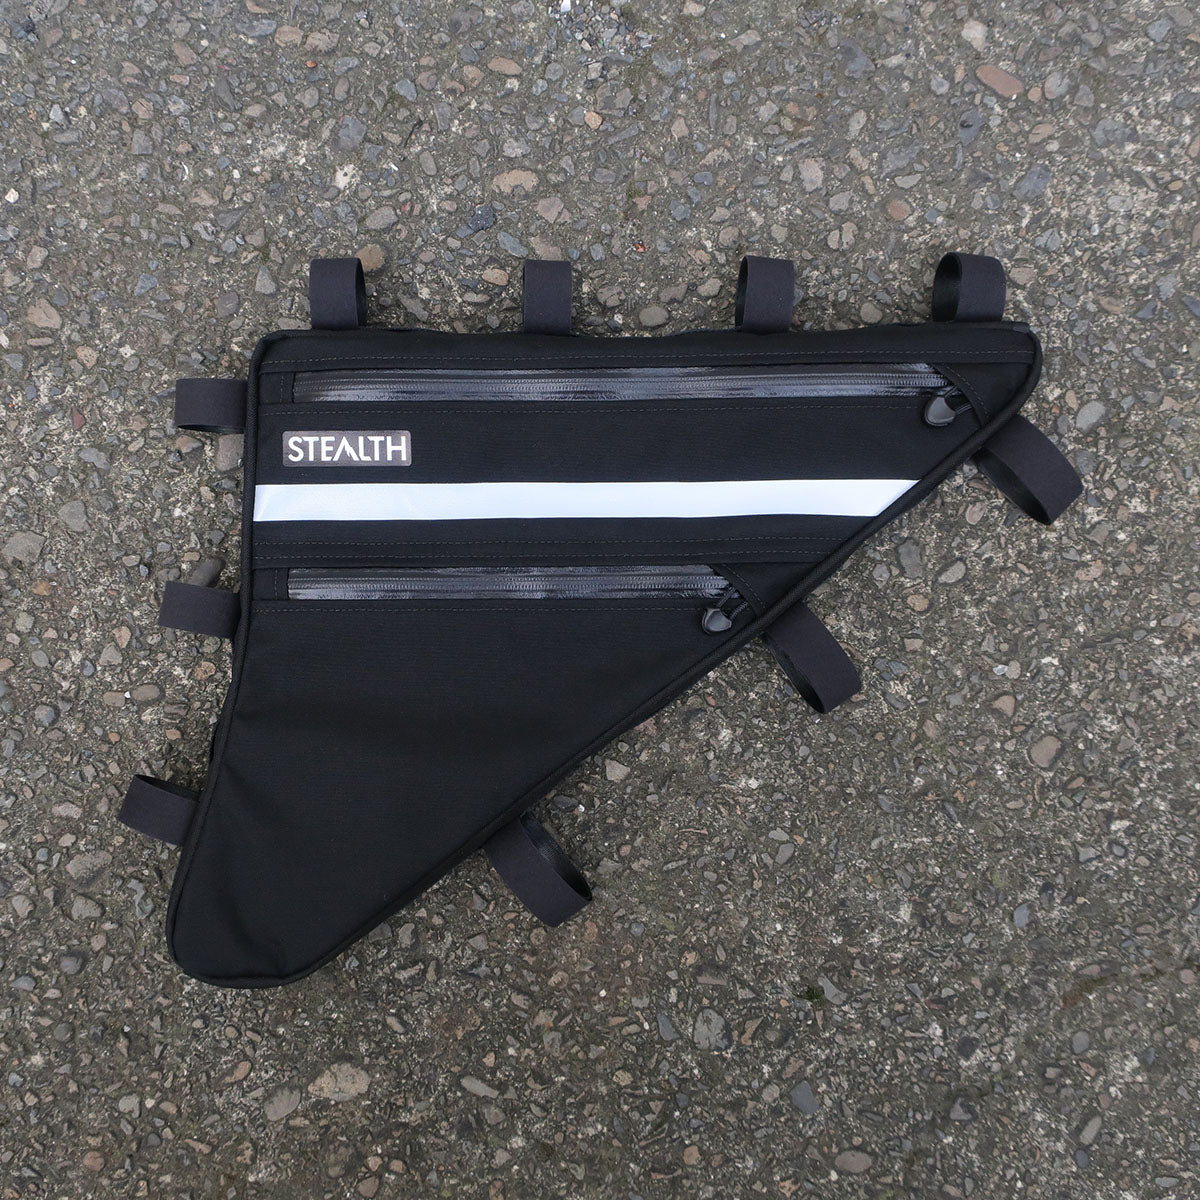 Black and reflective frame bag for bicycle touring